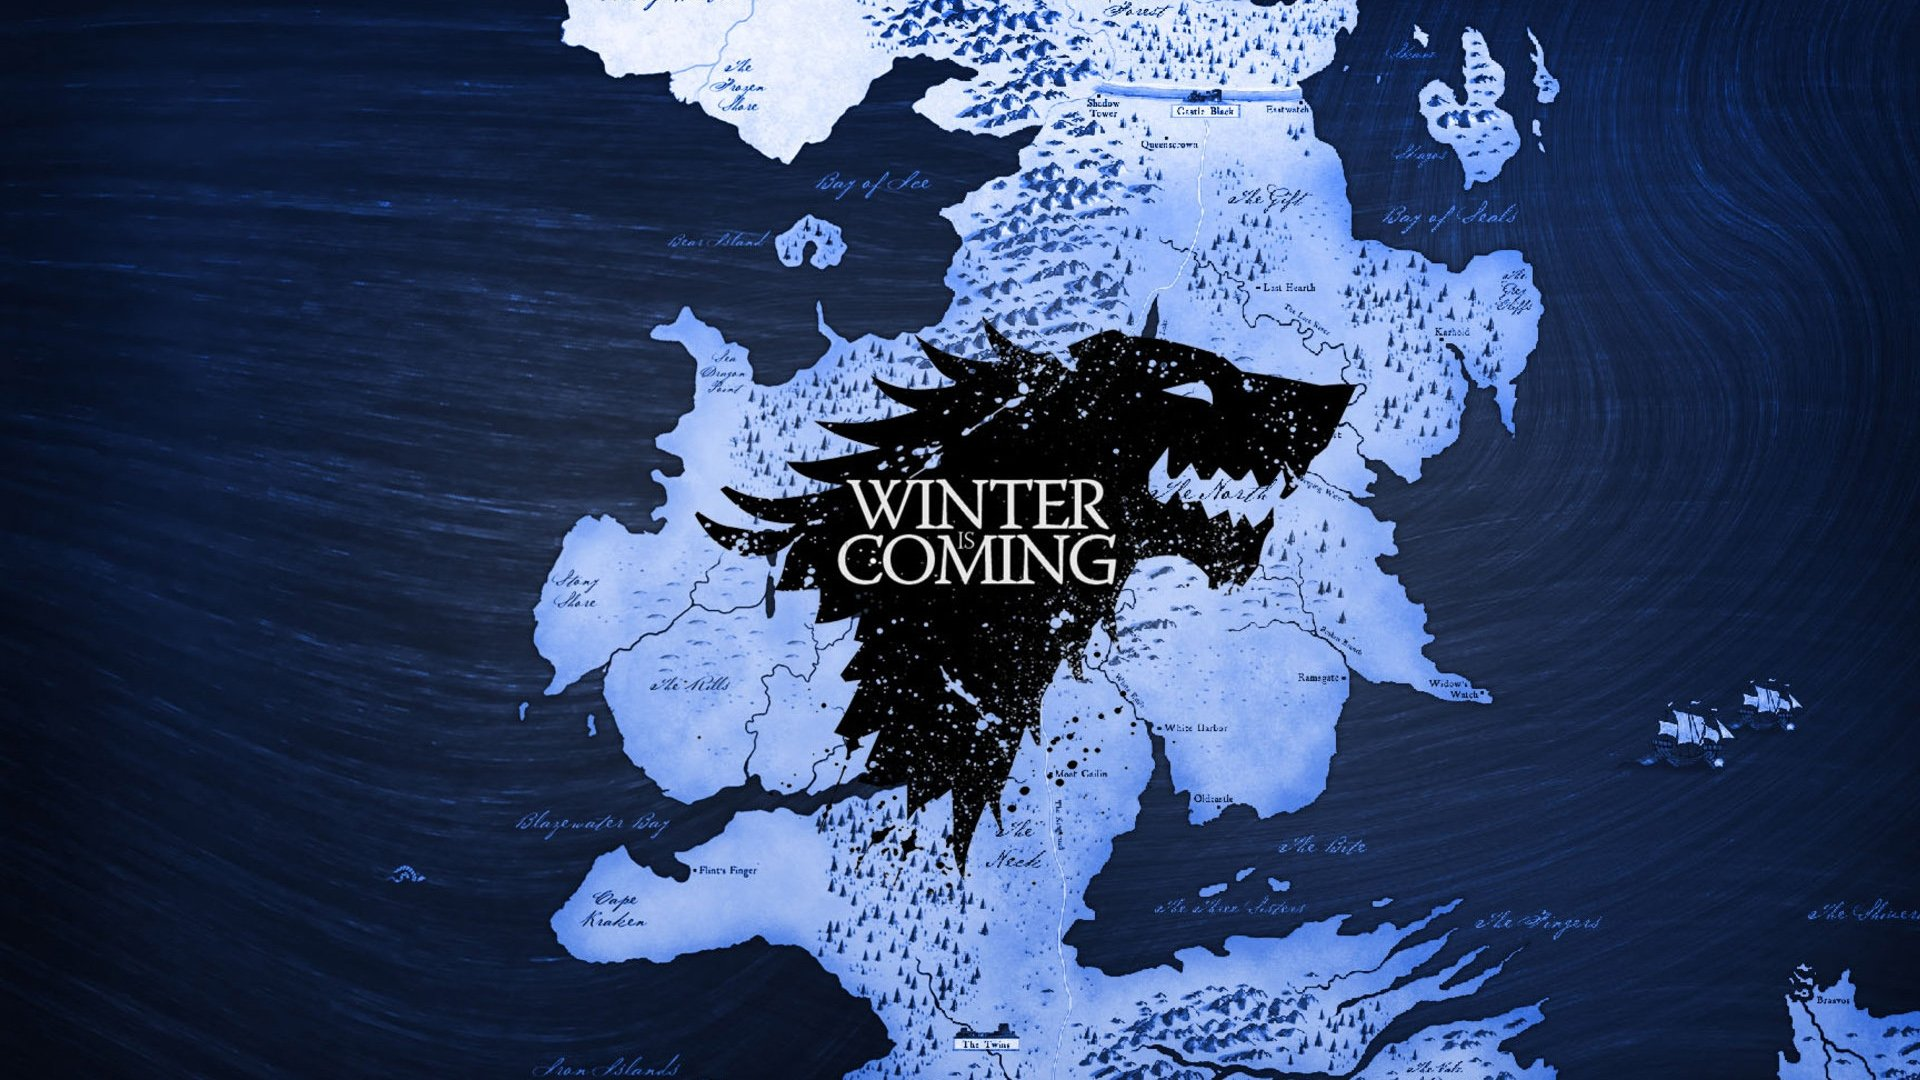 Game Of Thrones Hd Wallpapers Game Of Thrones Map 26679 Hd